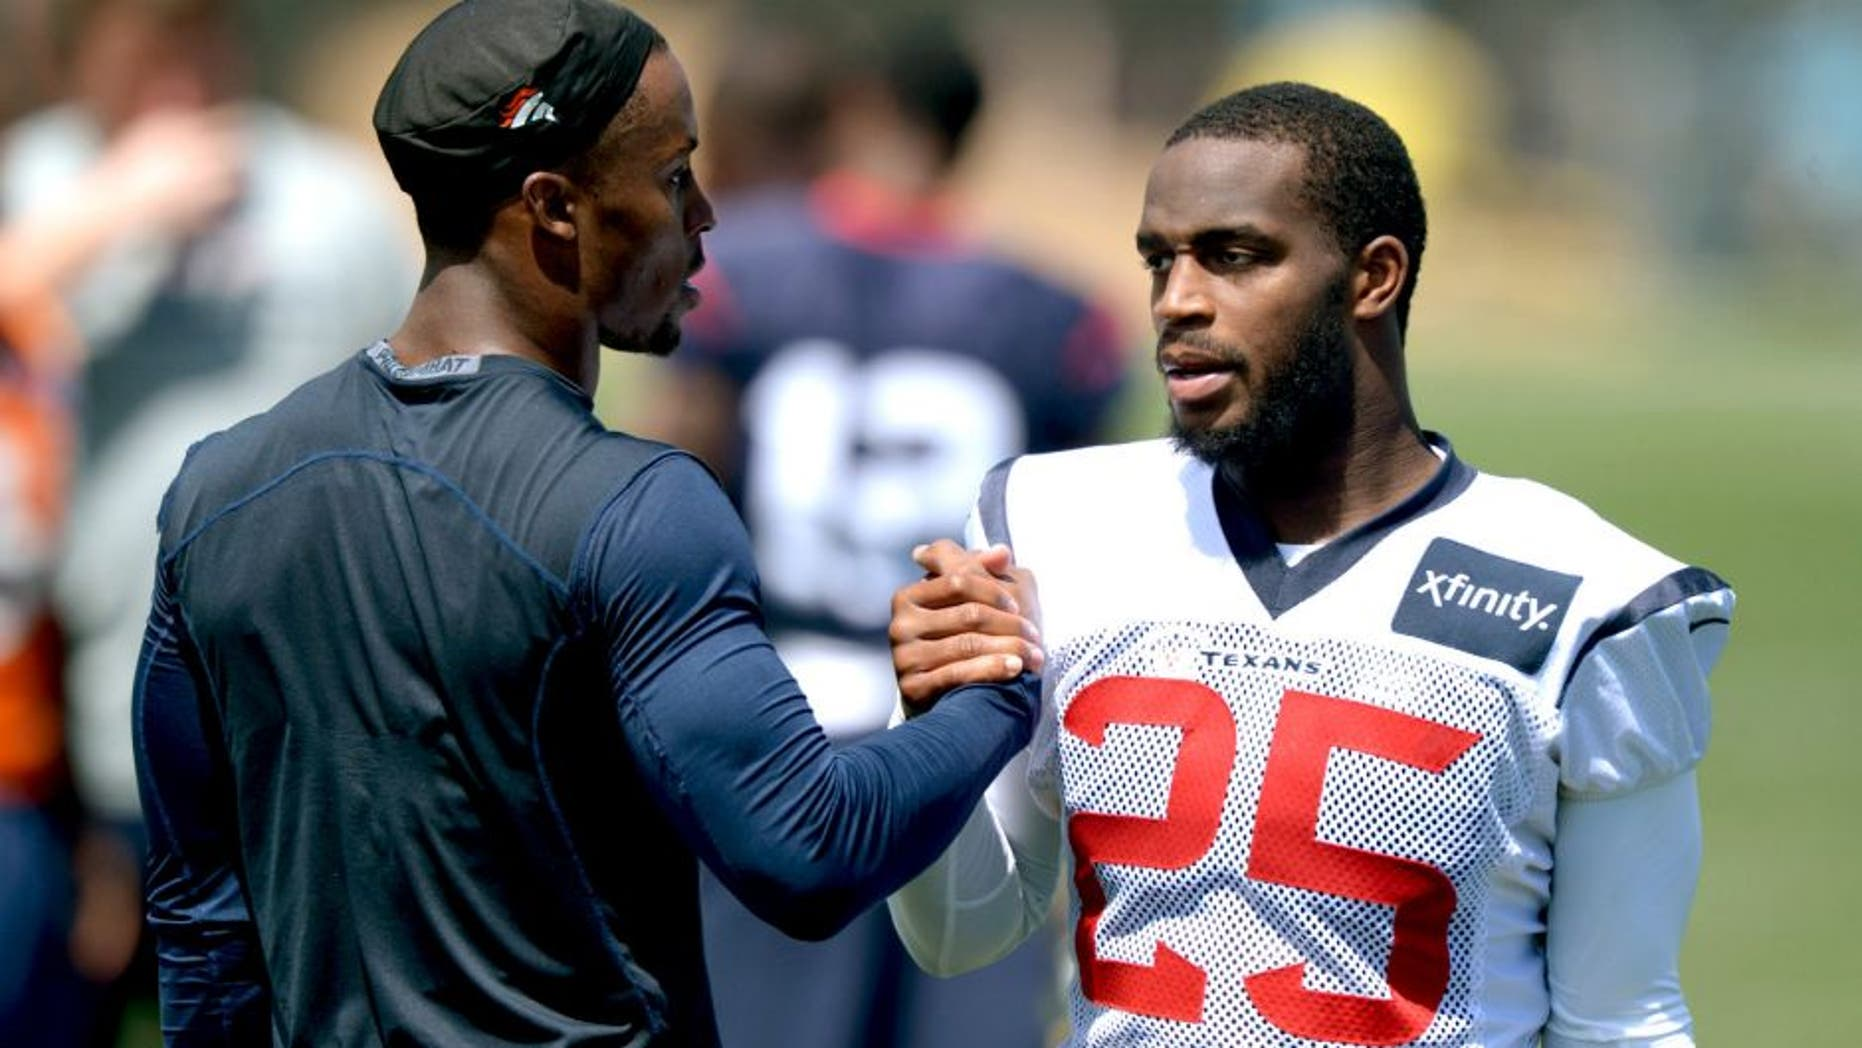 Aug 19, 2014; Englewood, CO, USA; Houston Texans cornerback Kareem Jackson (25) shakes hands with Denver Broncos safety Rahim Moore during scrimmage at the Broncos Headquarters. Mandatory Credit: Kirby Lee-USA TODAY Sports